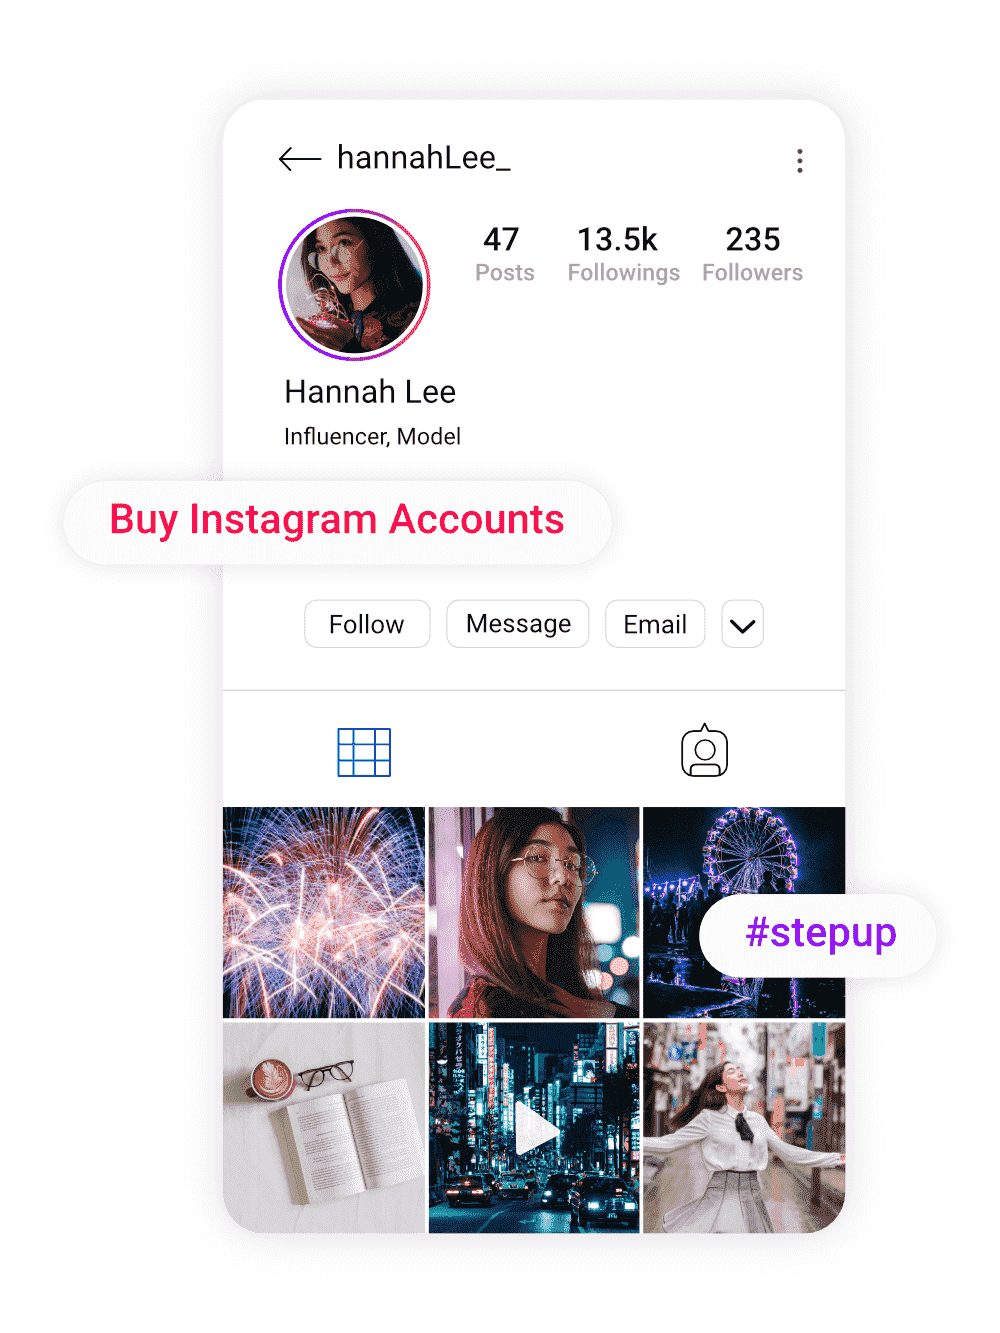 image of hannah lee who is happy with her new instagram account she purchased from buysellshoutouts.com